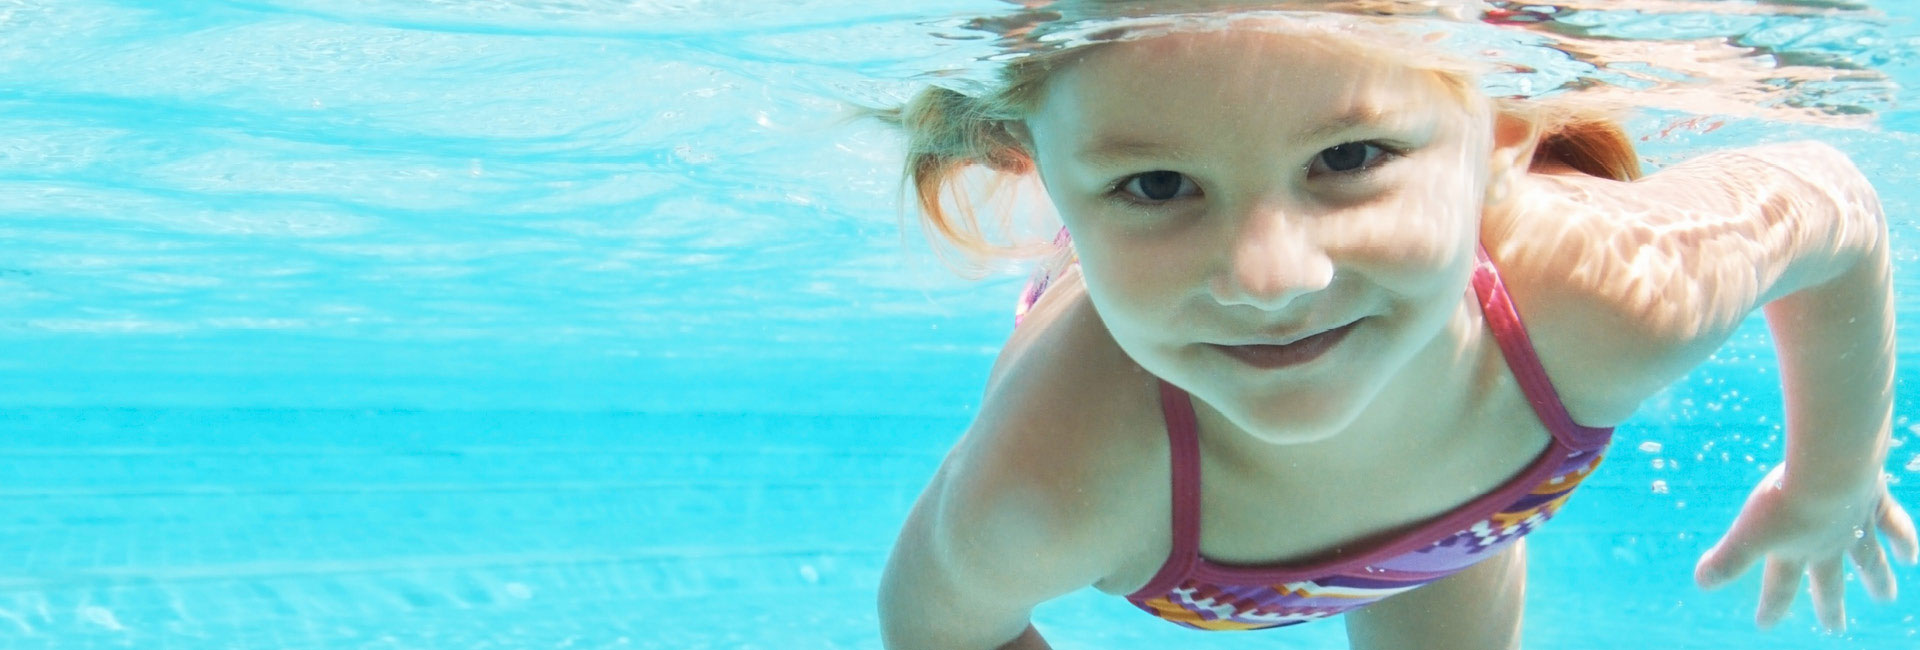 clubsport health and fitness gym live healthy - Kids Swimming Underwater